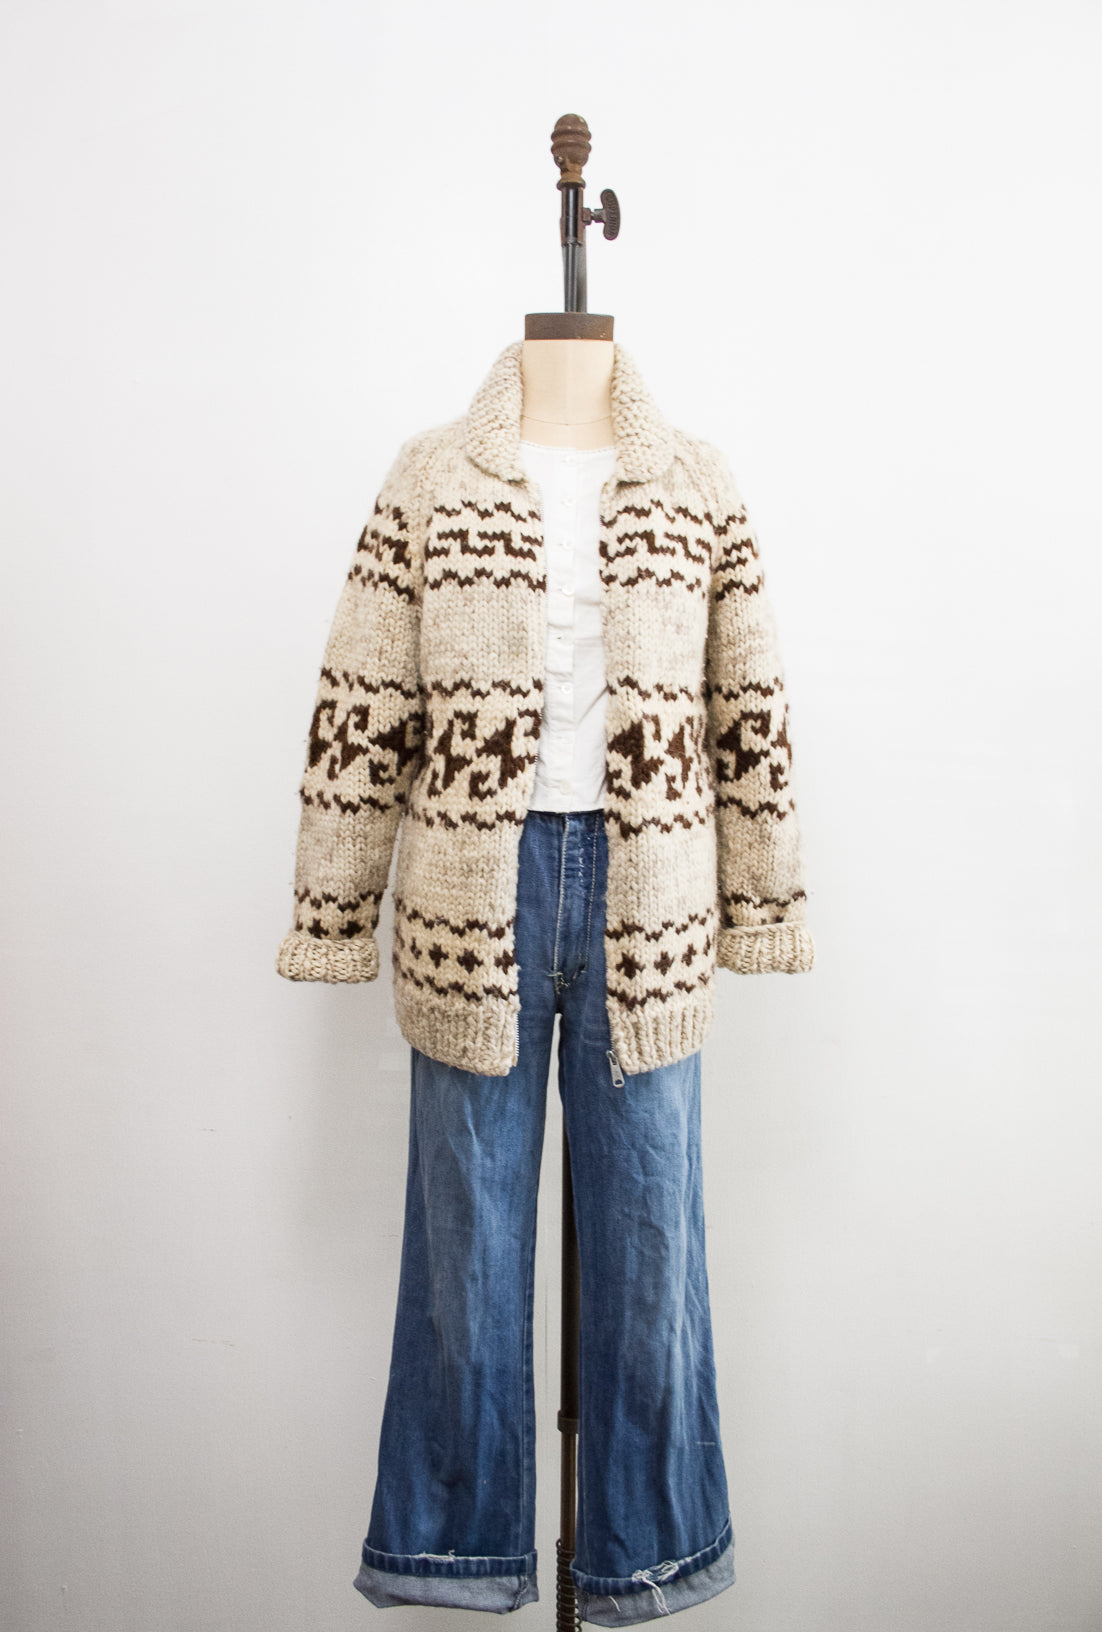 1970s Cowichan Oatmeal Wool Knit Sweater